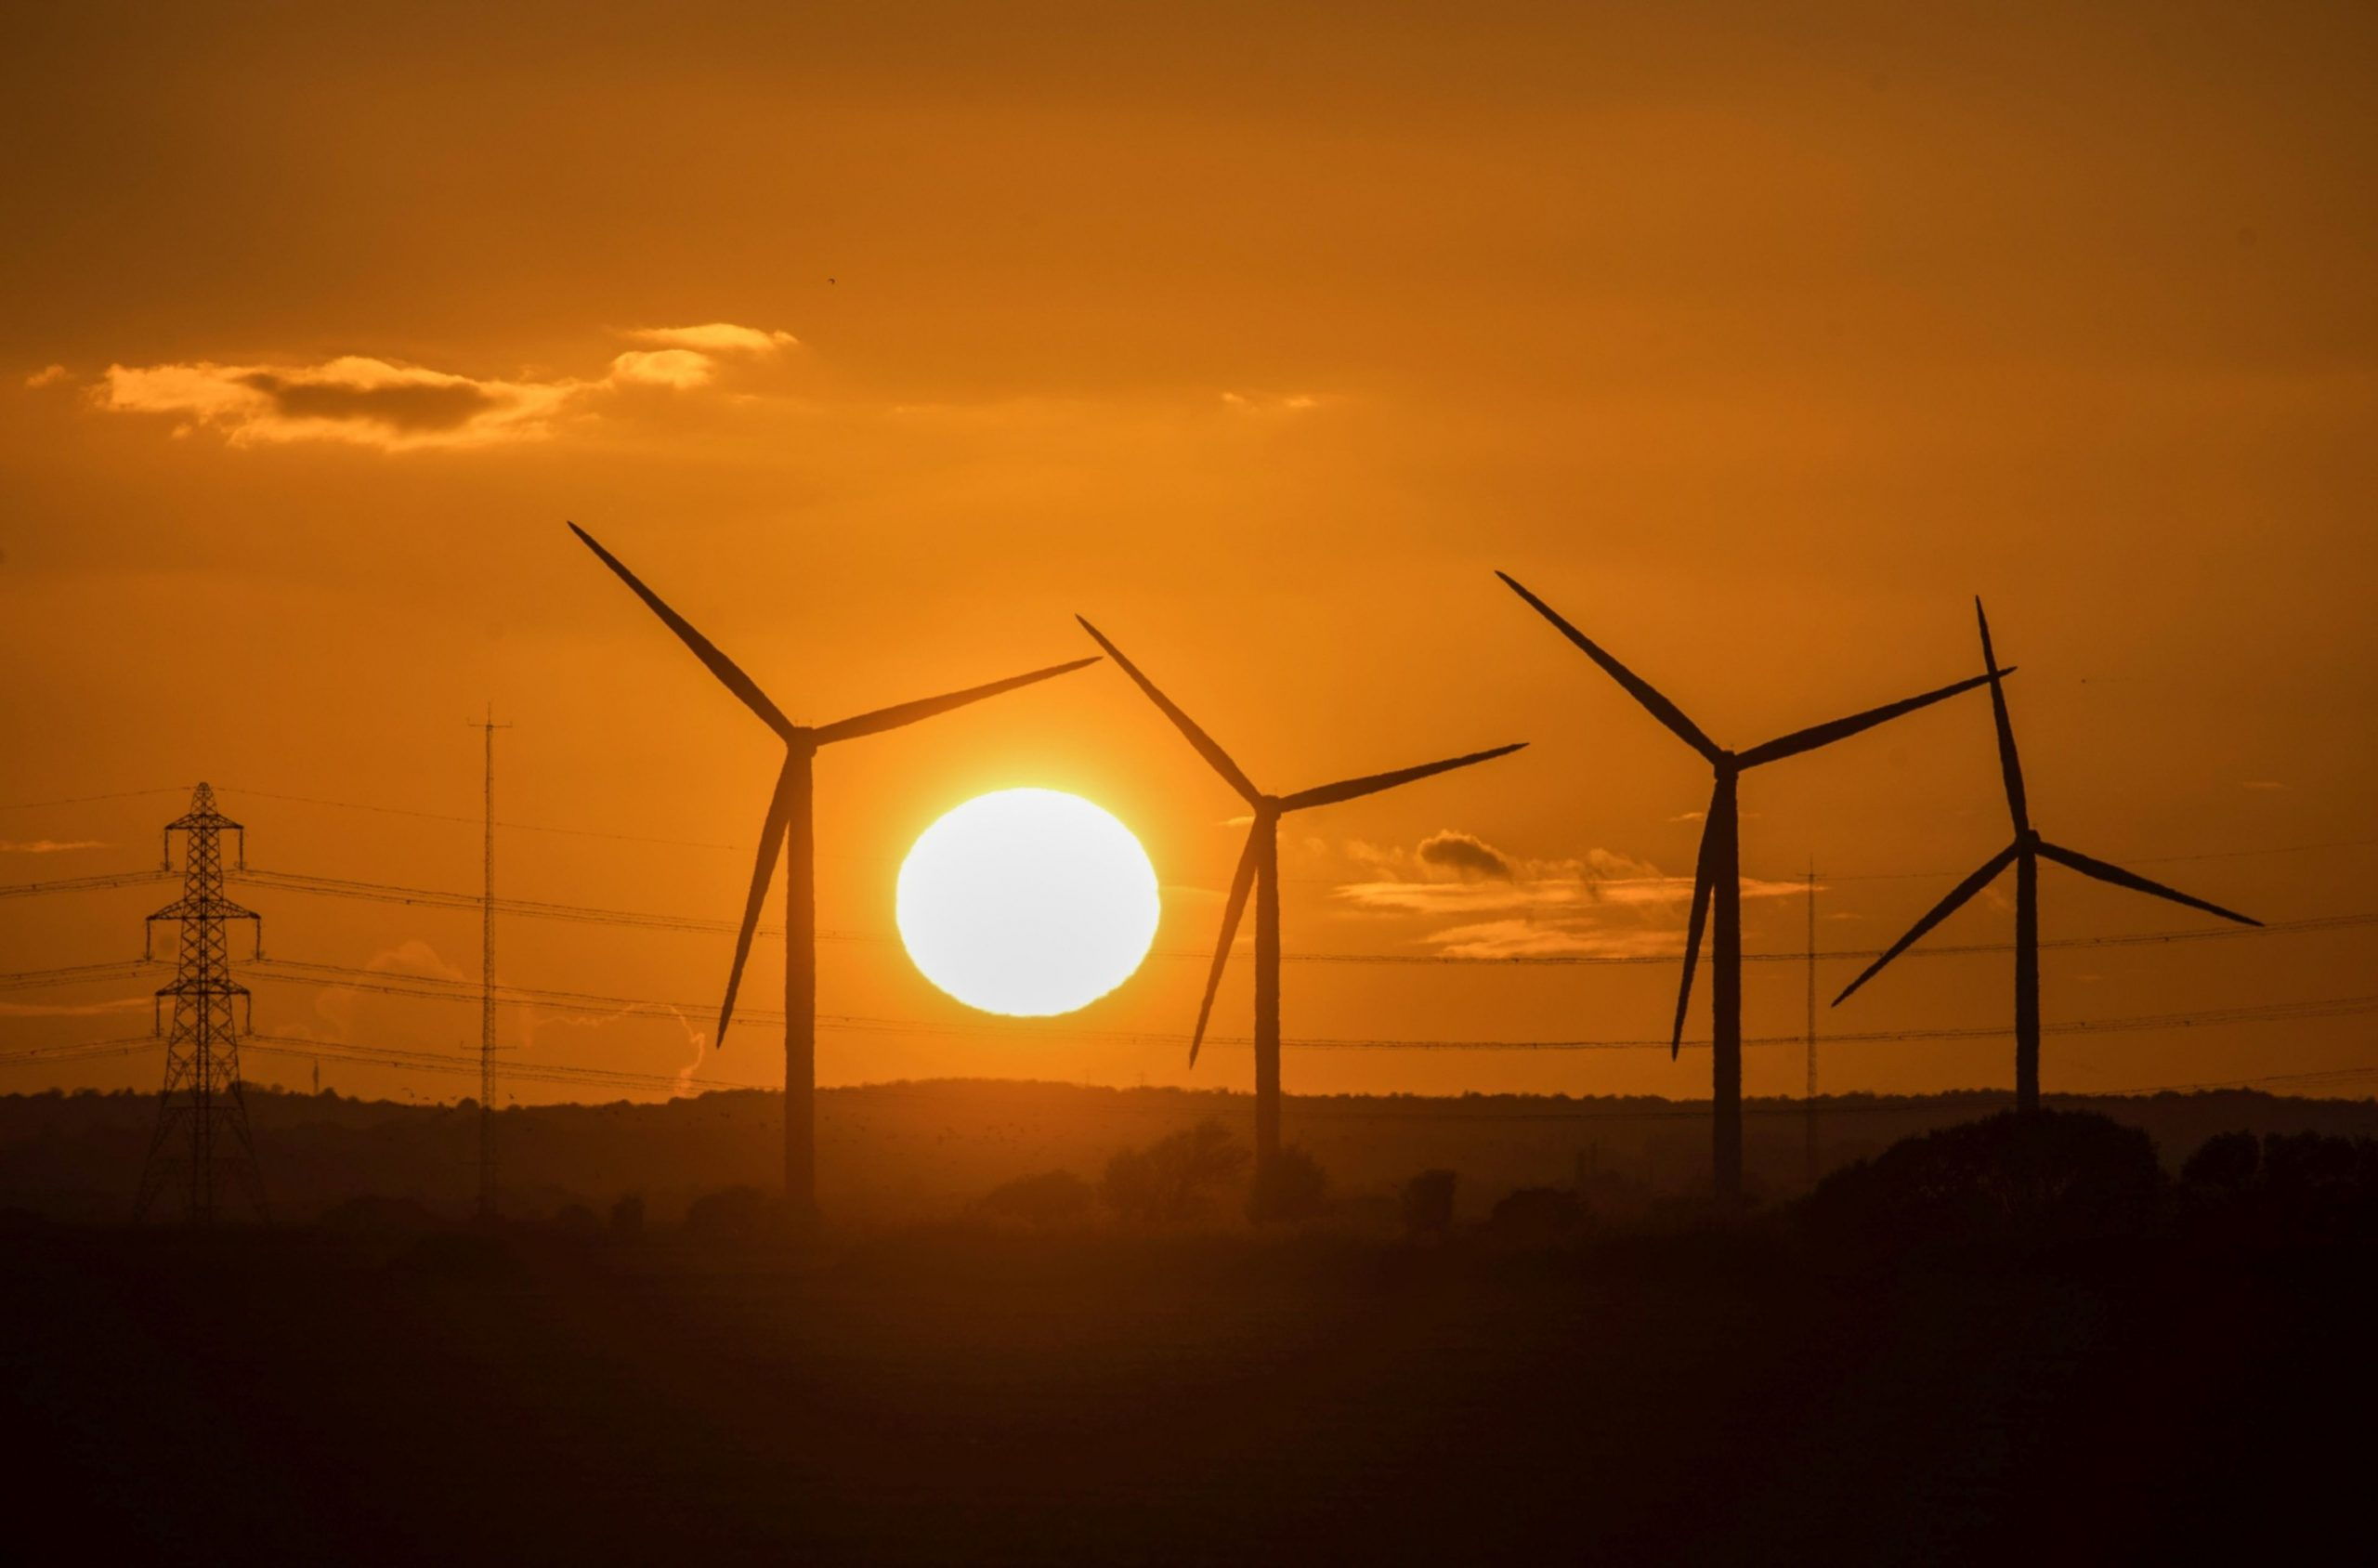 Corporate Clean Energy Buying Grew 18% in 2020, Despite Mountain of Adversity